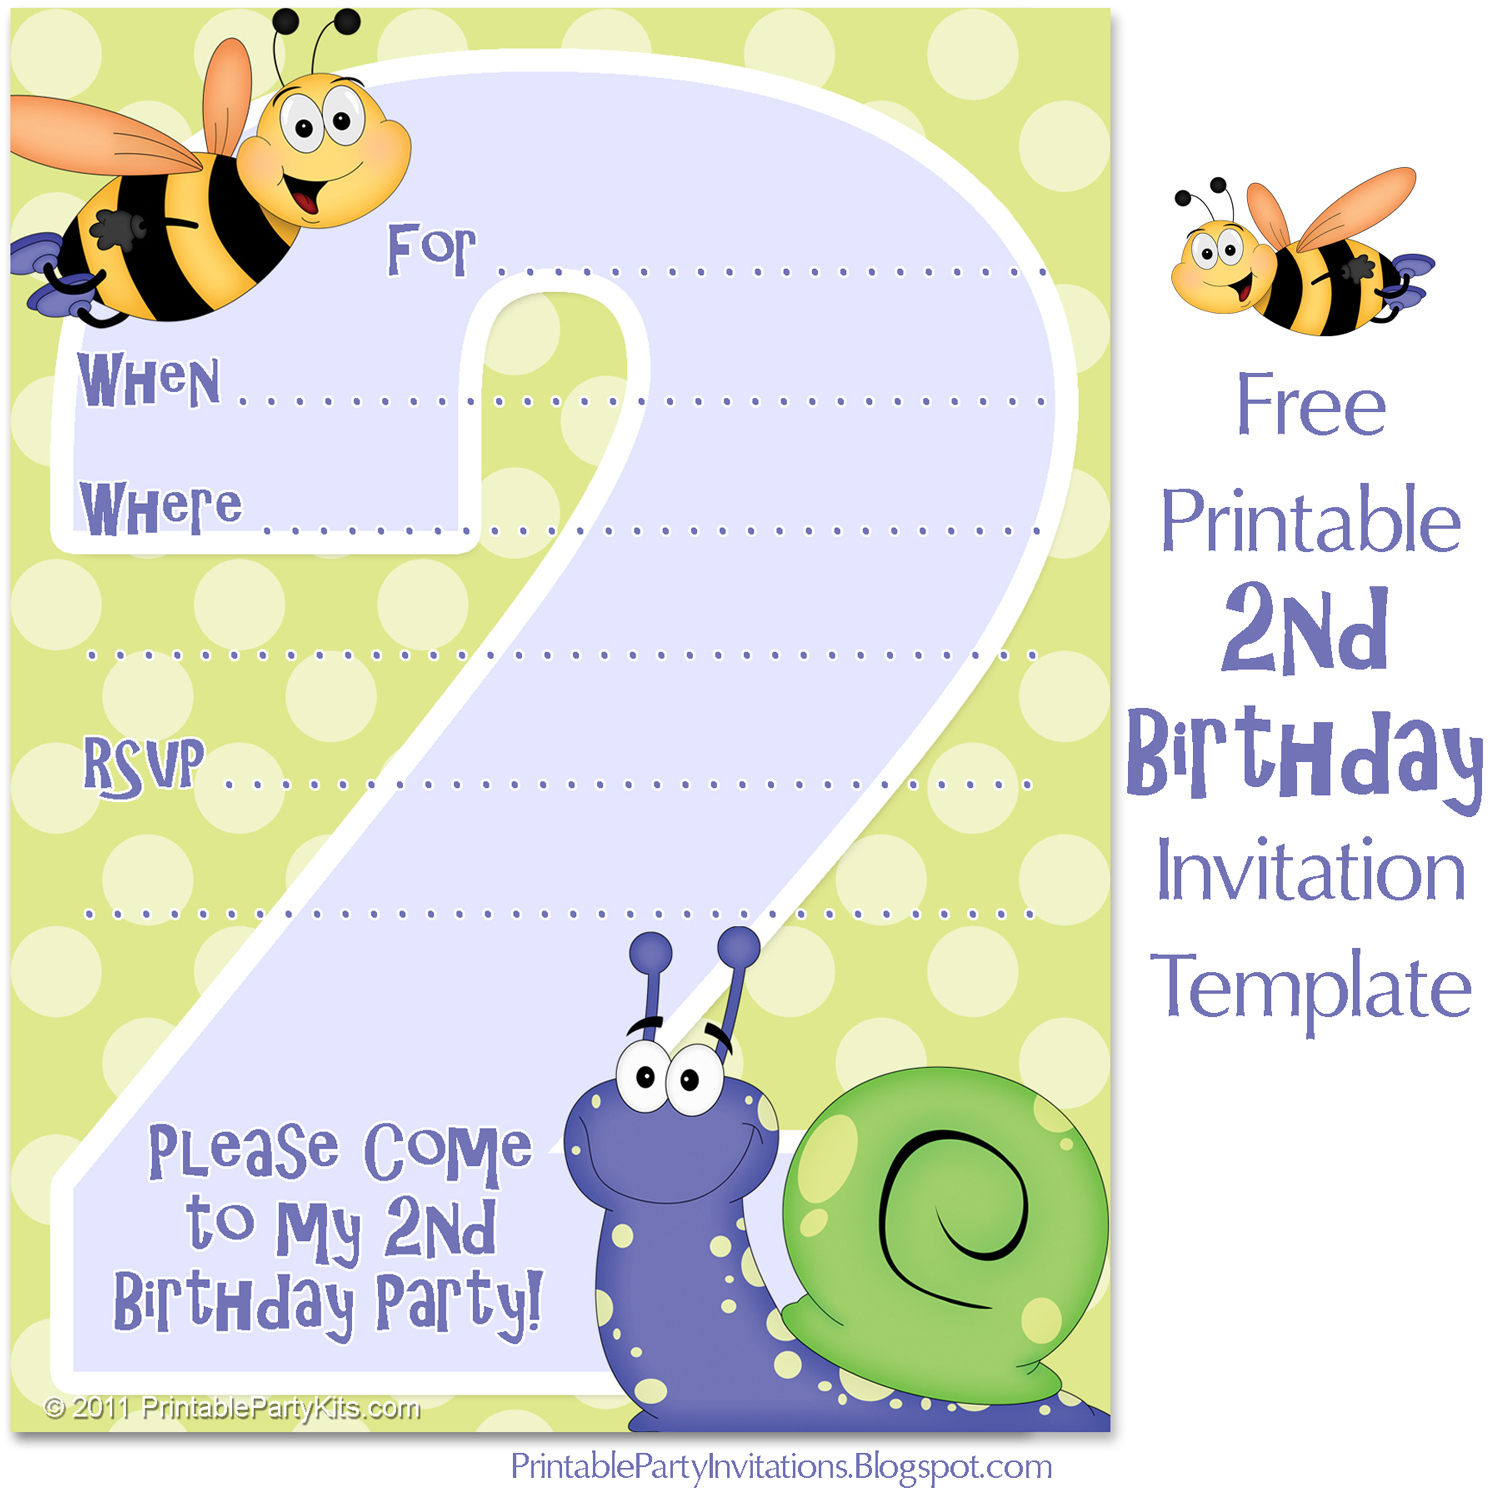 invitation template for a 2nd birthday